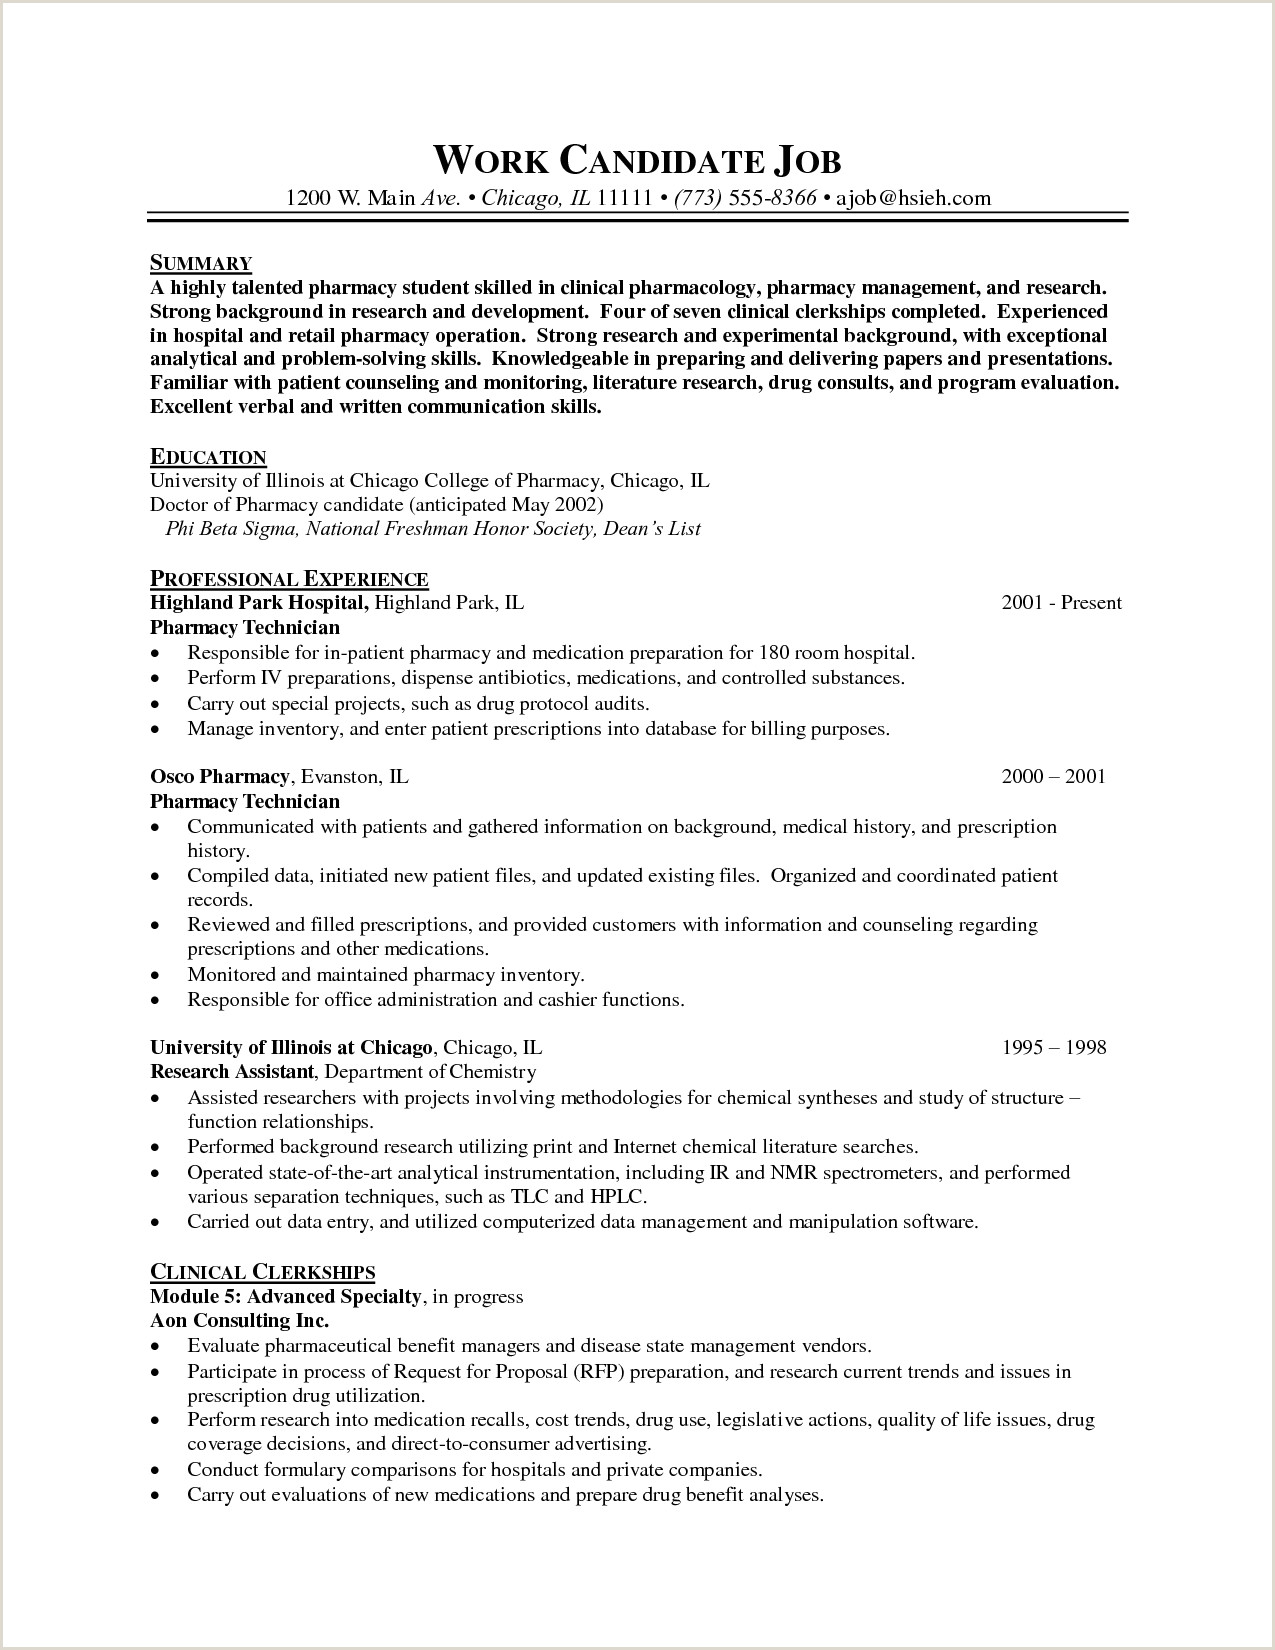 Pharmacist Resume Objective Professional Resume Cover Letter Sample